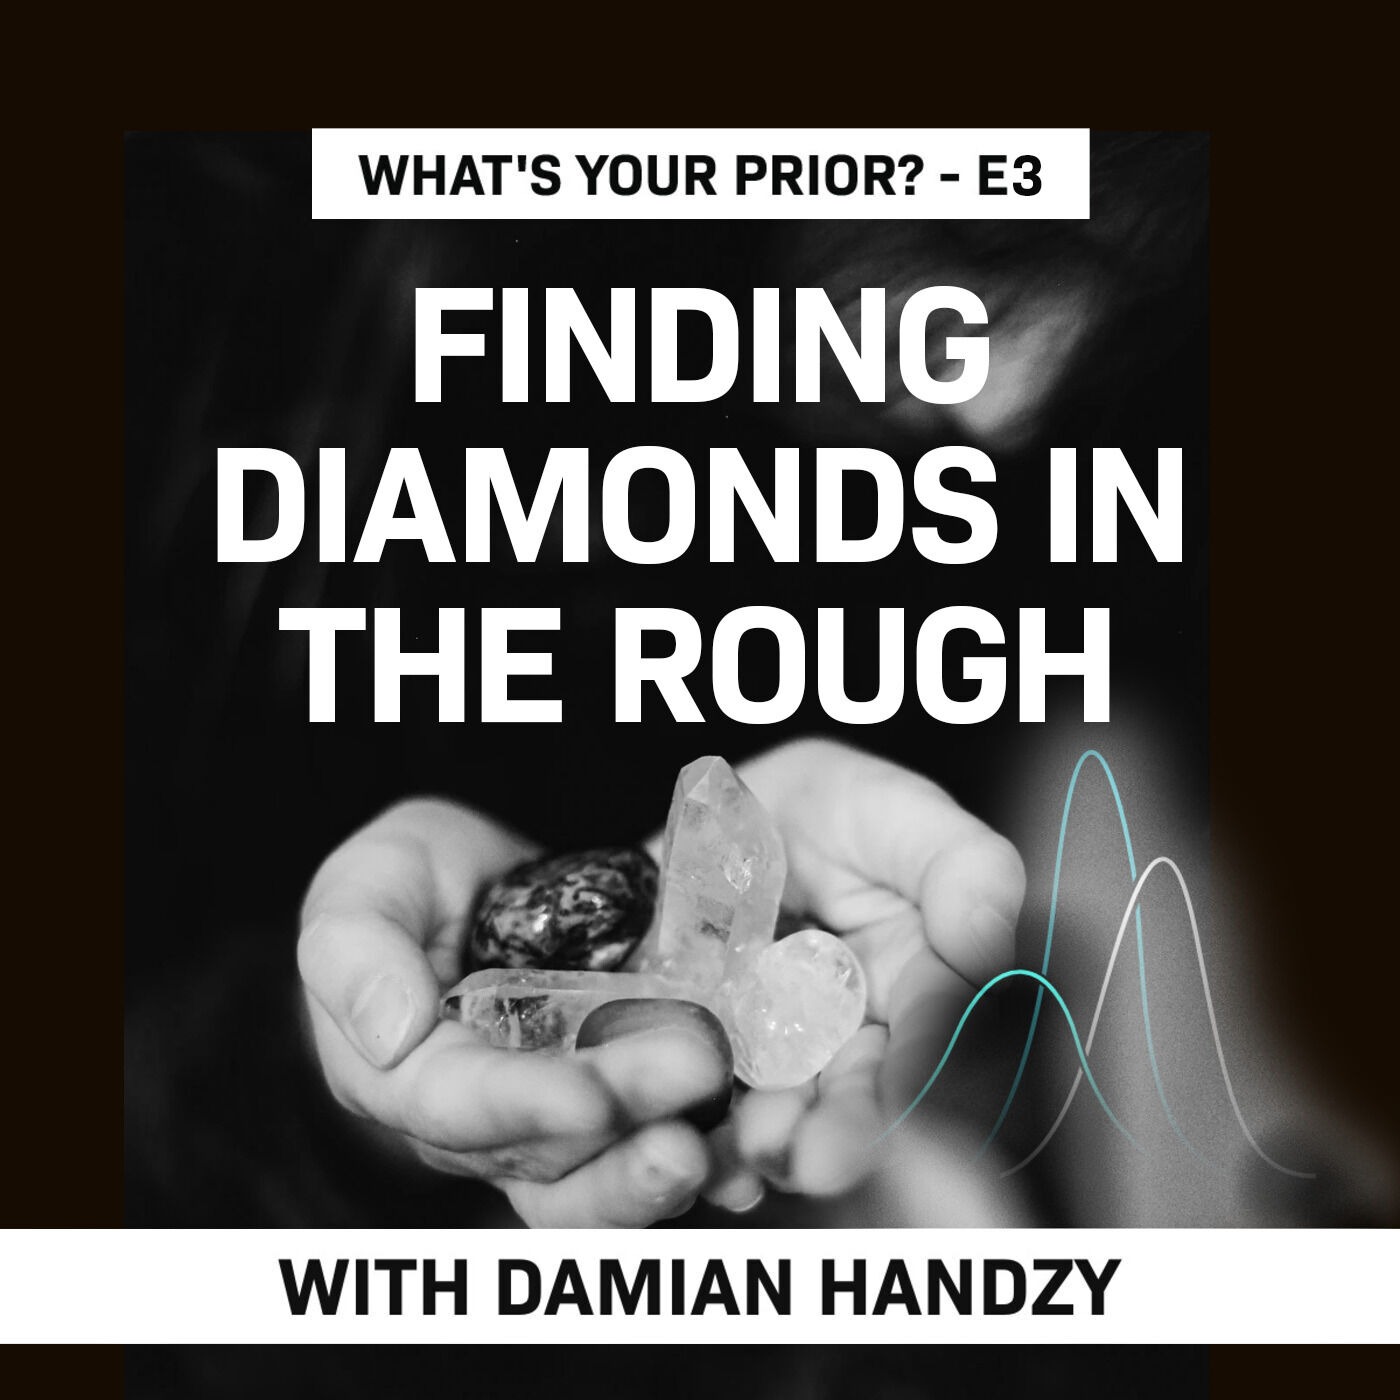 Finding Diamonds in the Rough